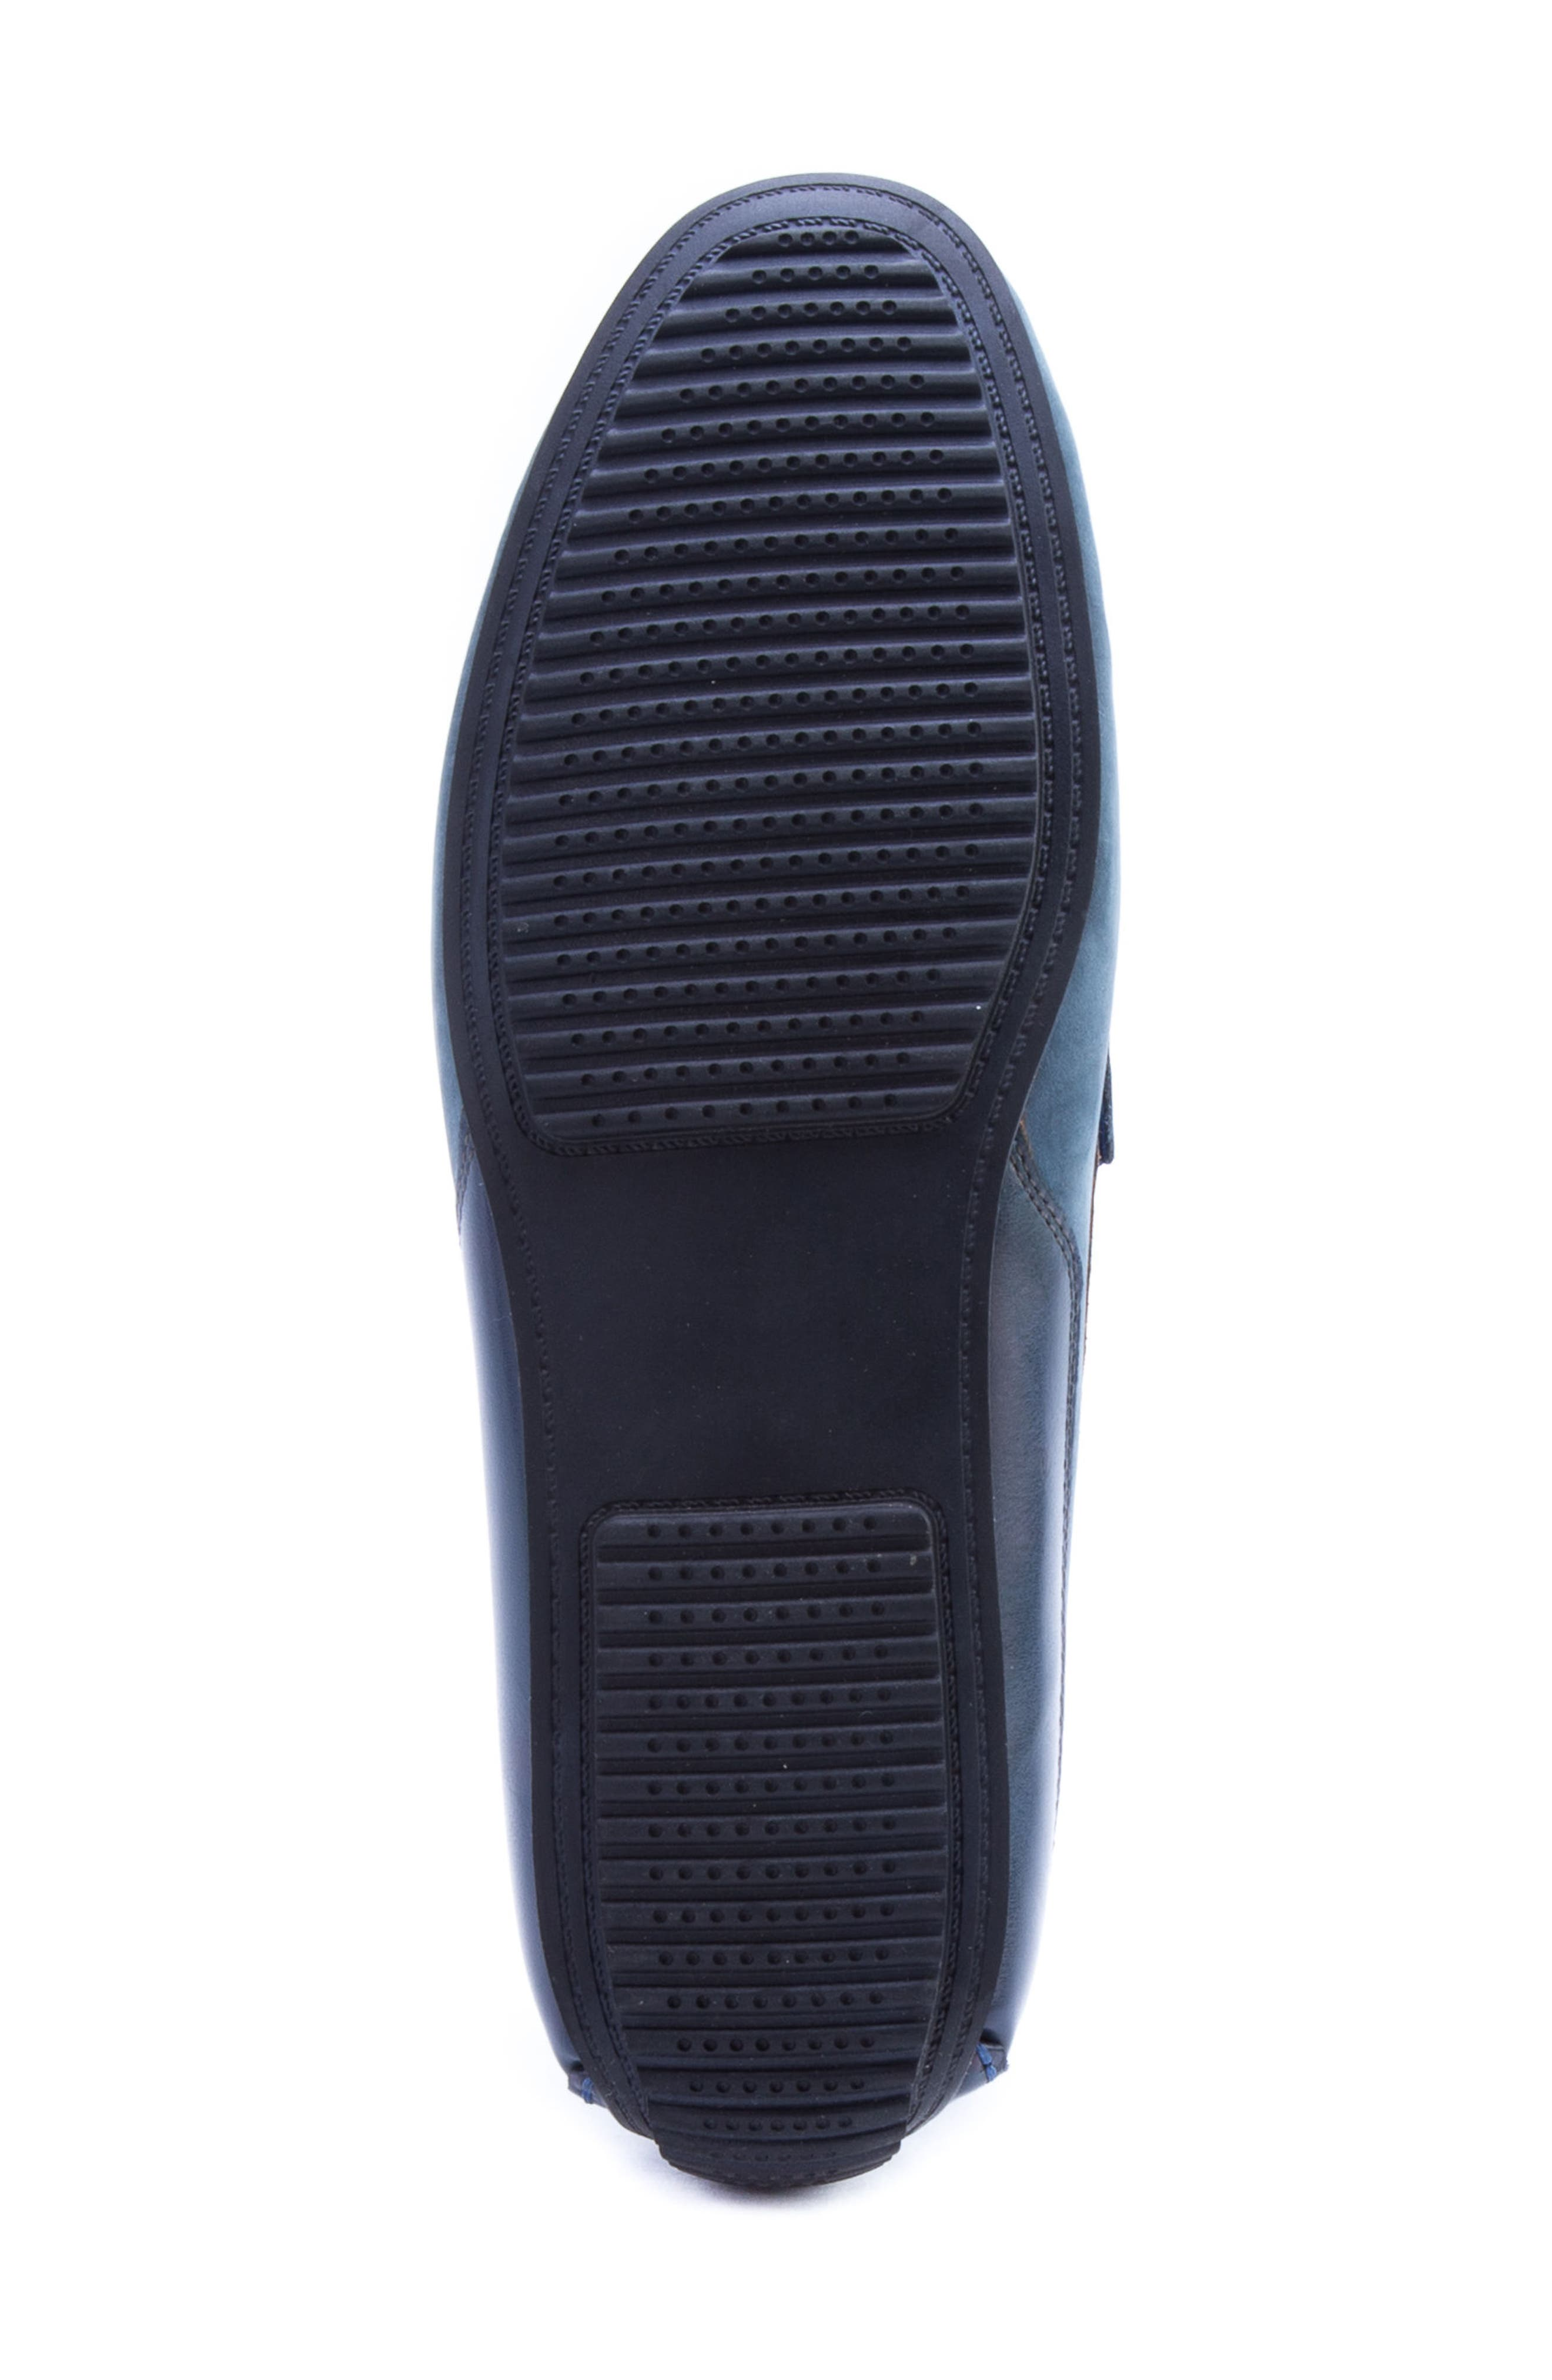 Seurat Driving Loafer,                             Alternate thumbnail 6, color,                             Blue Suede/ Leather